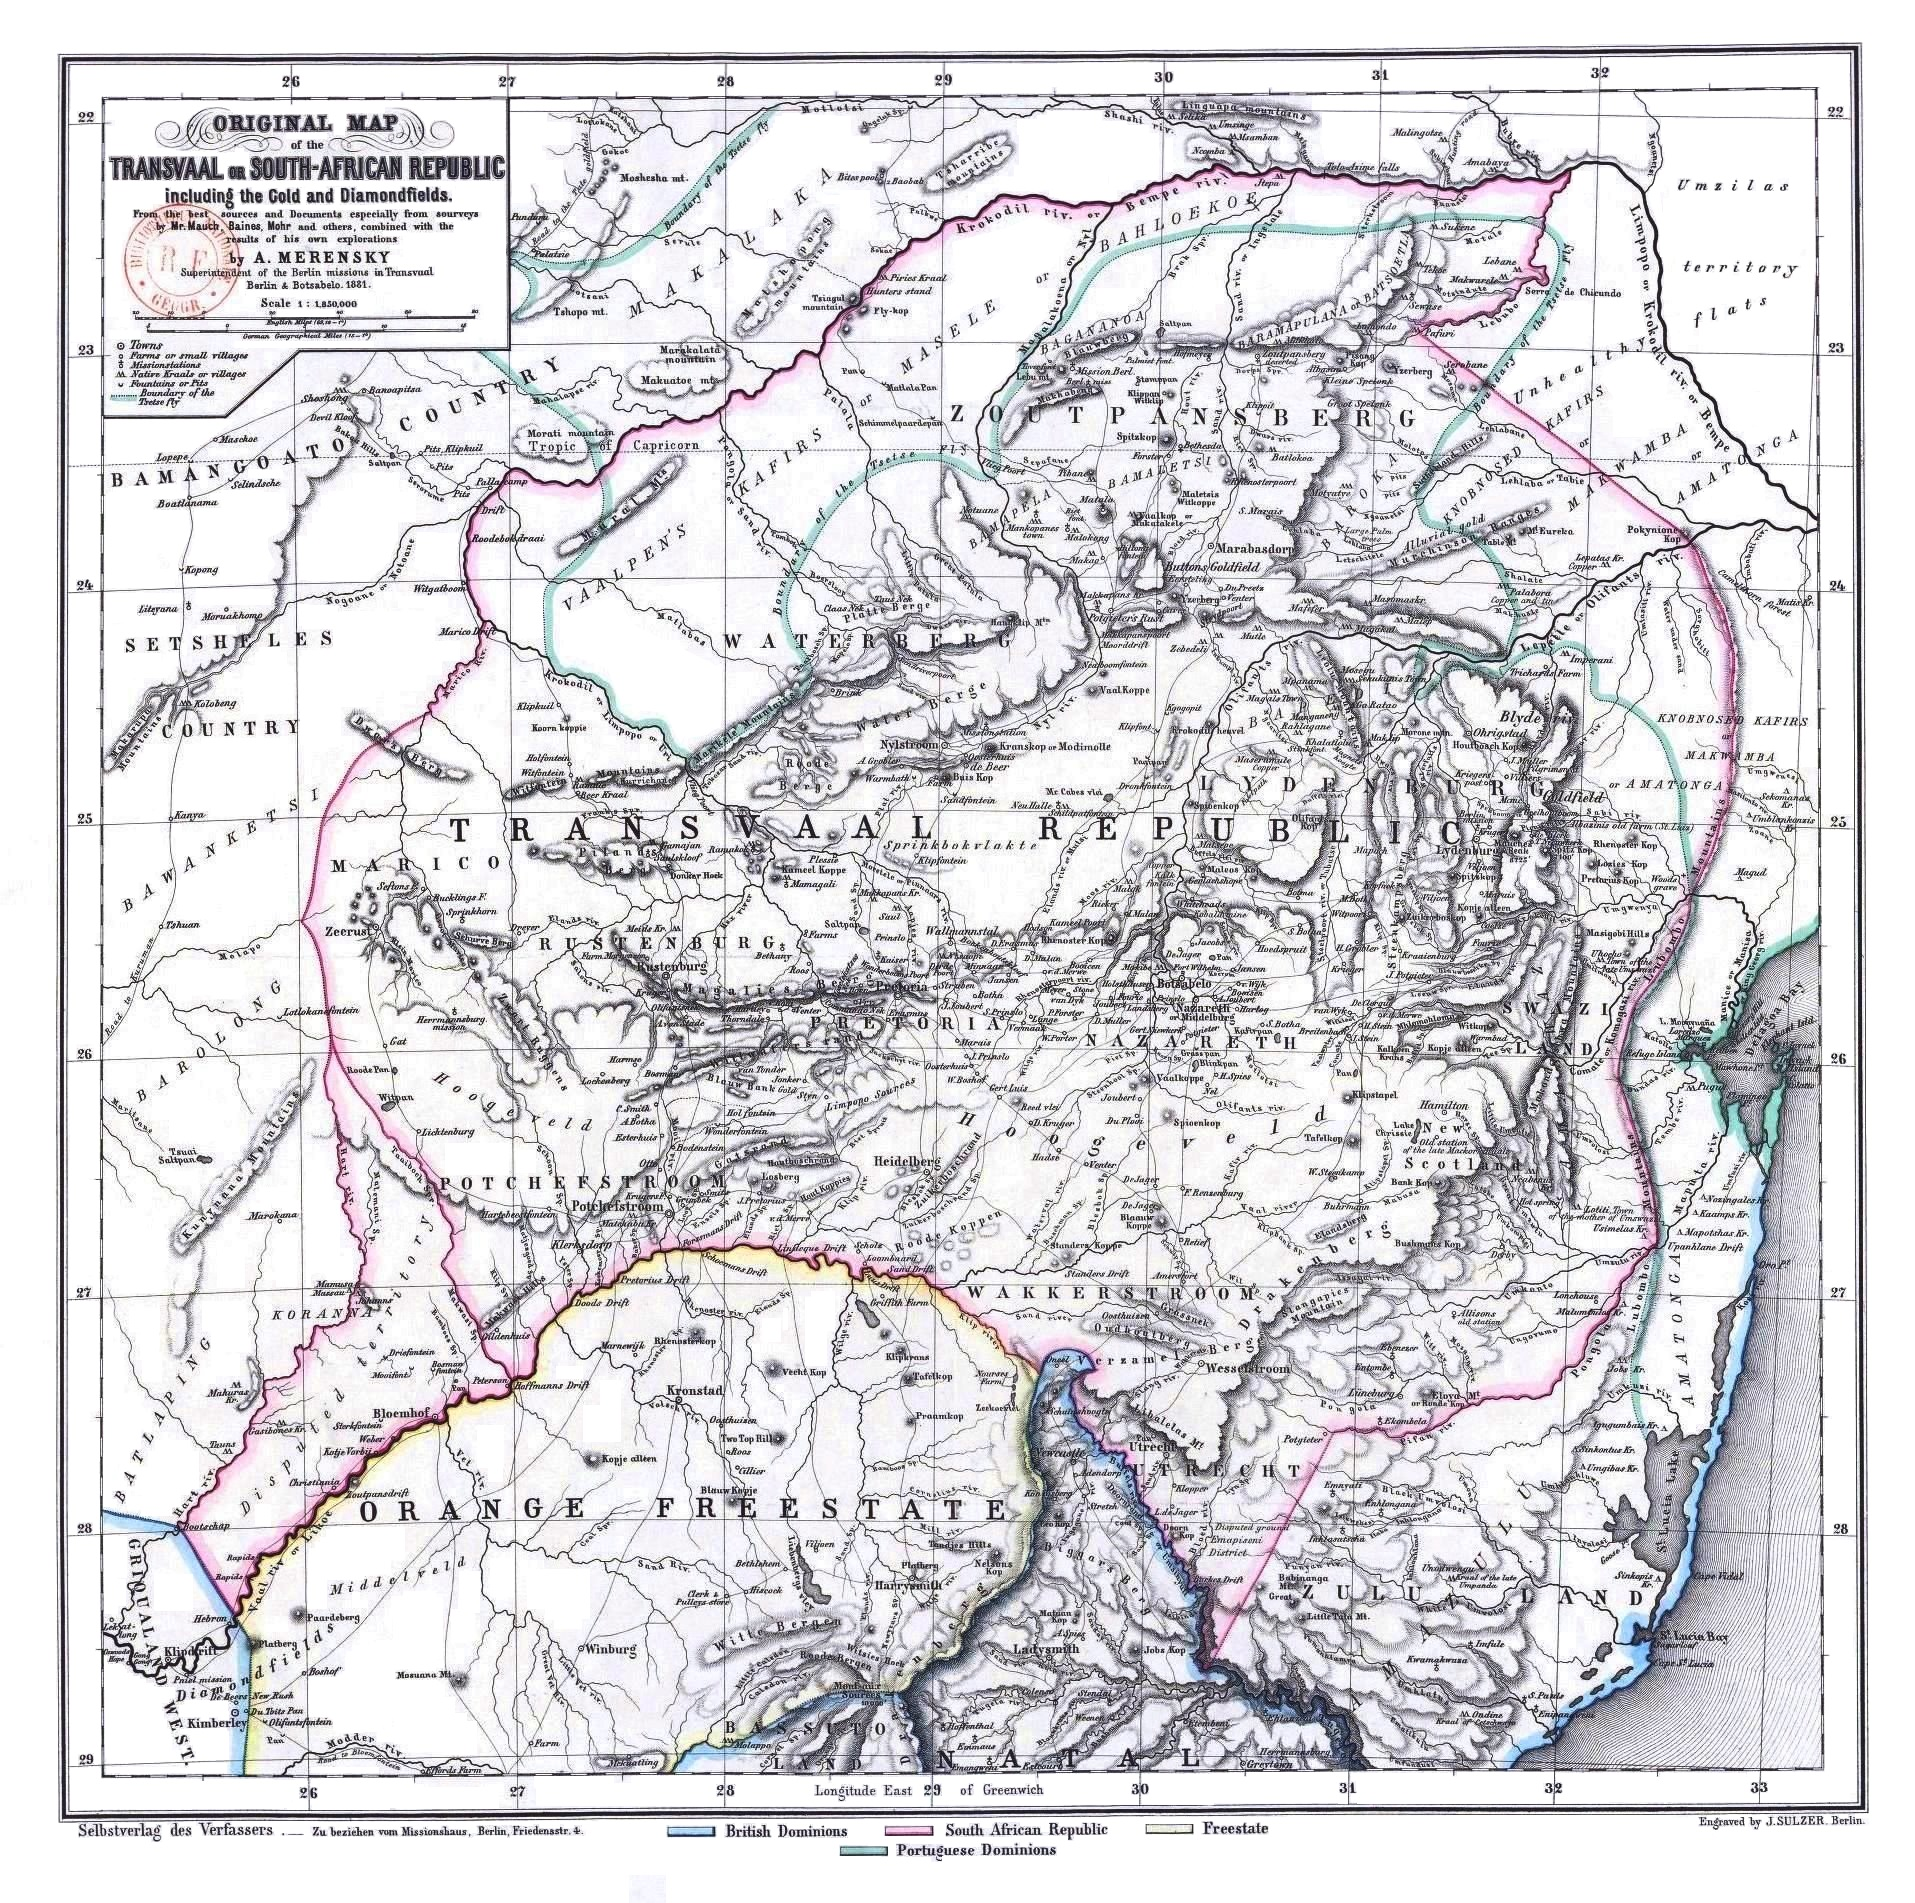 Gold In South Africa Map.File Original Map Of The Transvaal Or South African Republic